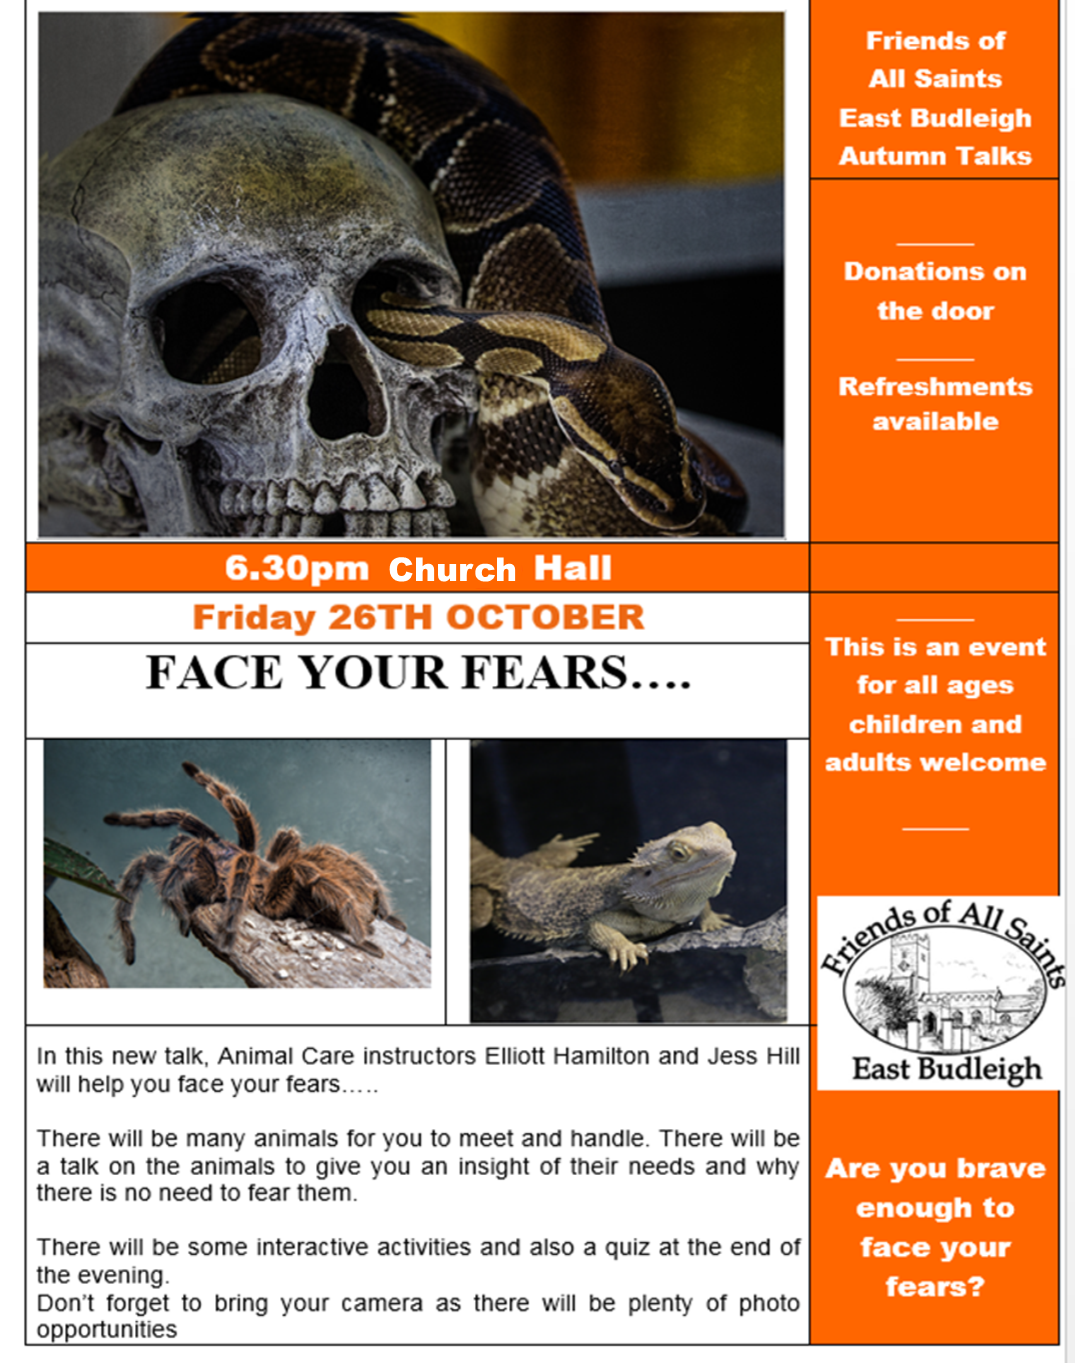 Face your Fears - Snakes, Spiders etc  6 30pm - ExmouthAiR